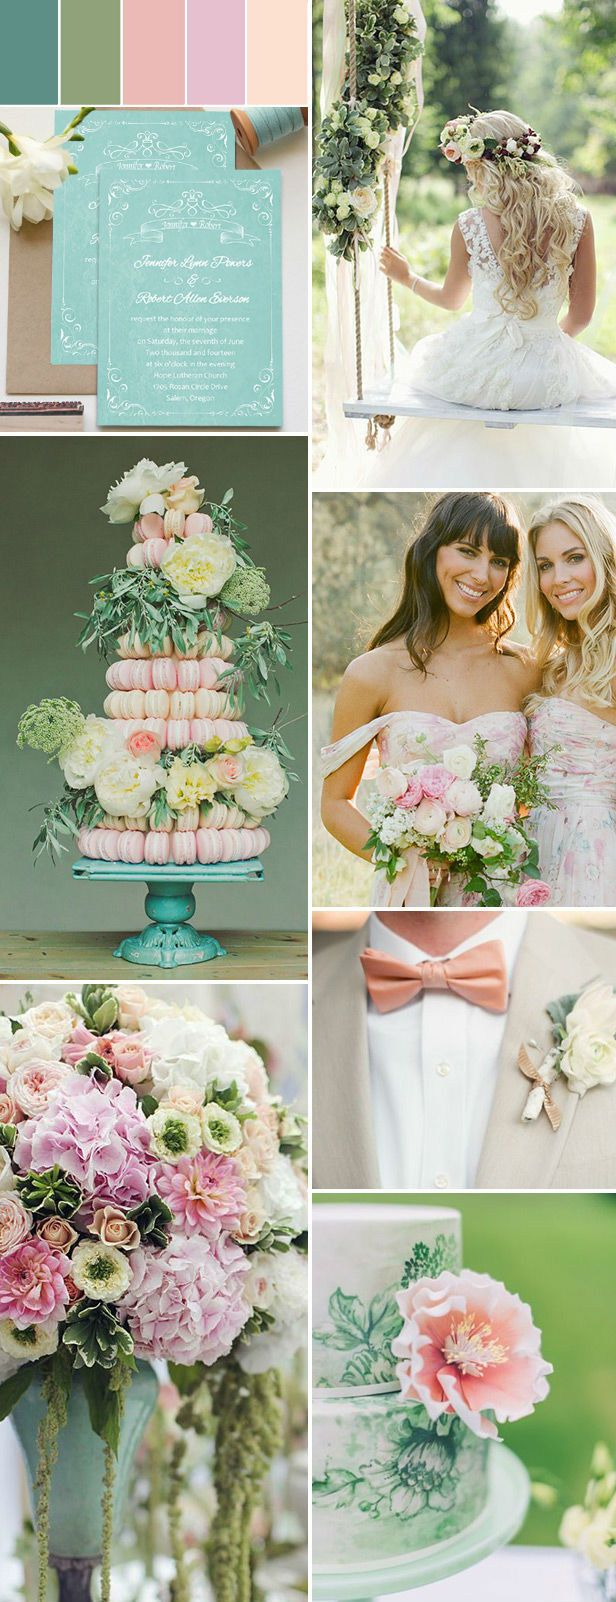 pink and green summer garden wedding ideas